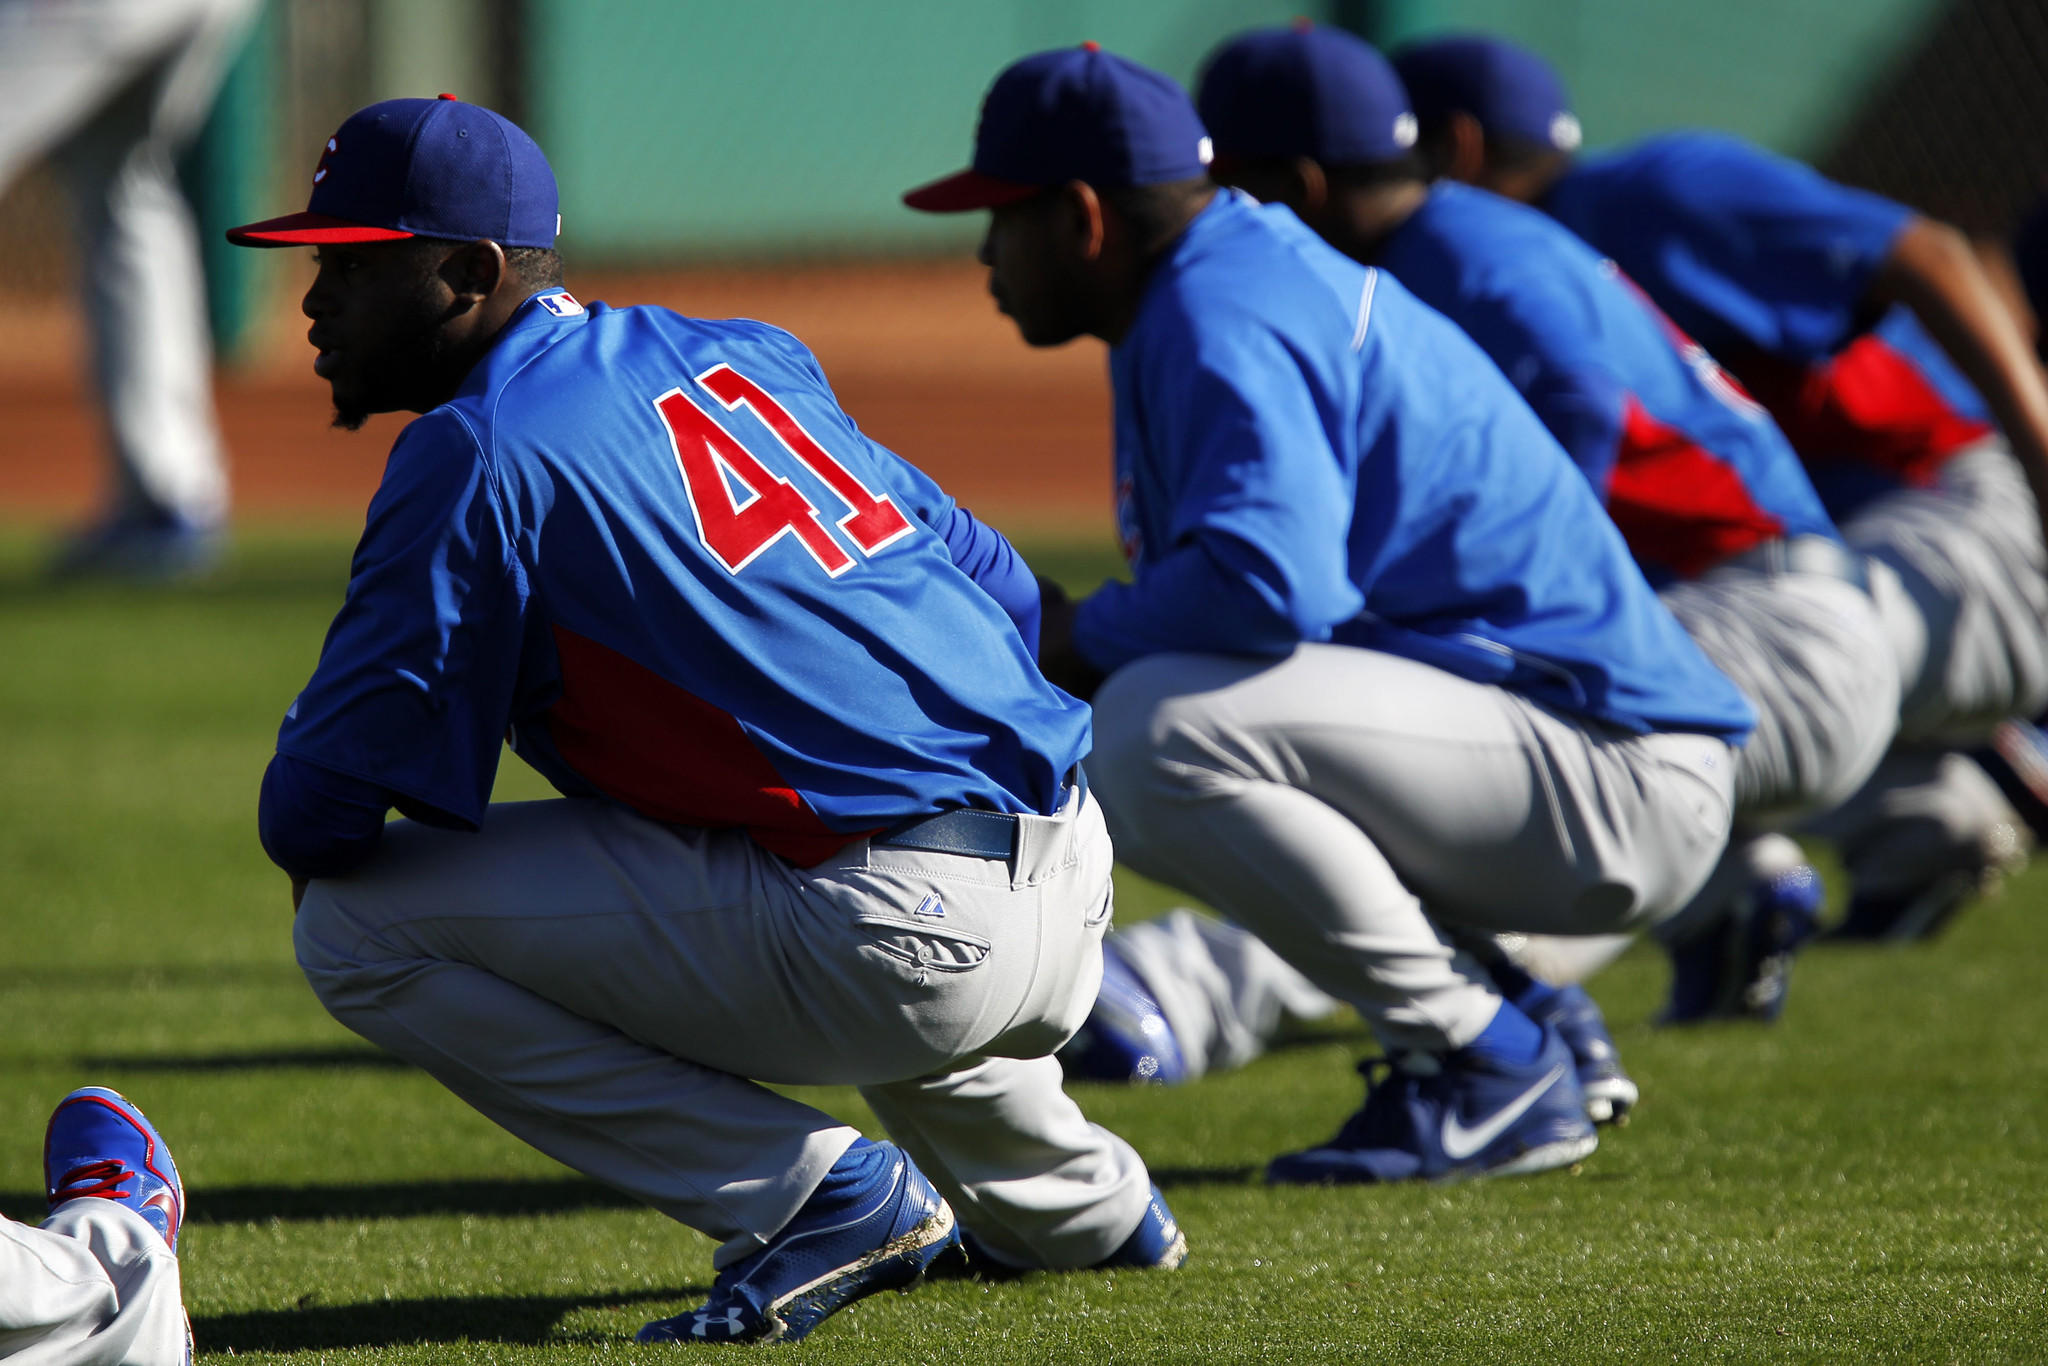 Chicago Cubs relief pitcher Arodys Vizcaino (41) warms up with his teammates during Spring Training at HoHoKam Park in Mesa, Arizona on Friday, Feb. 22, 2013.